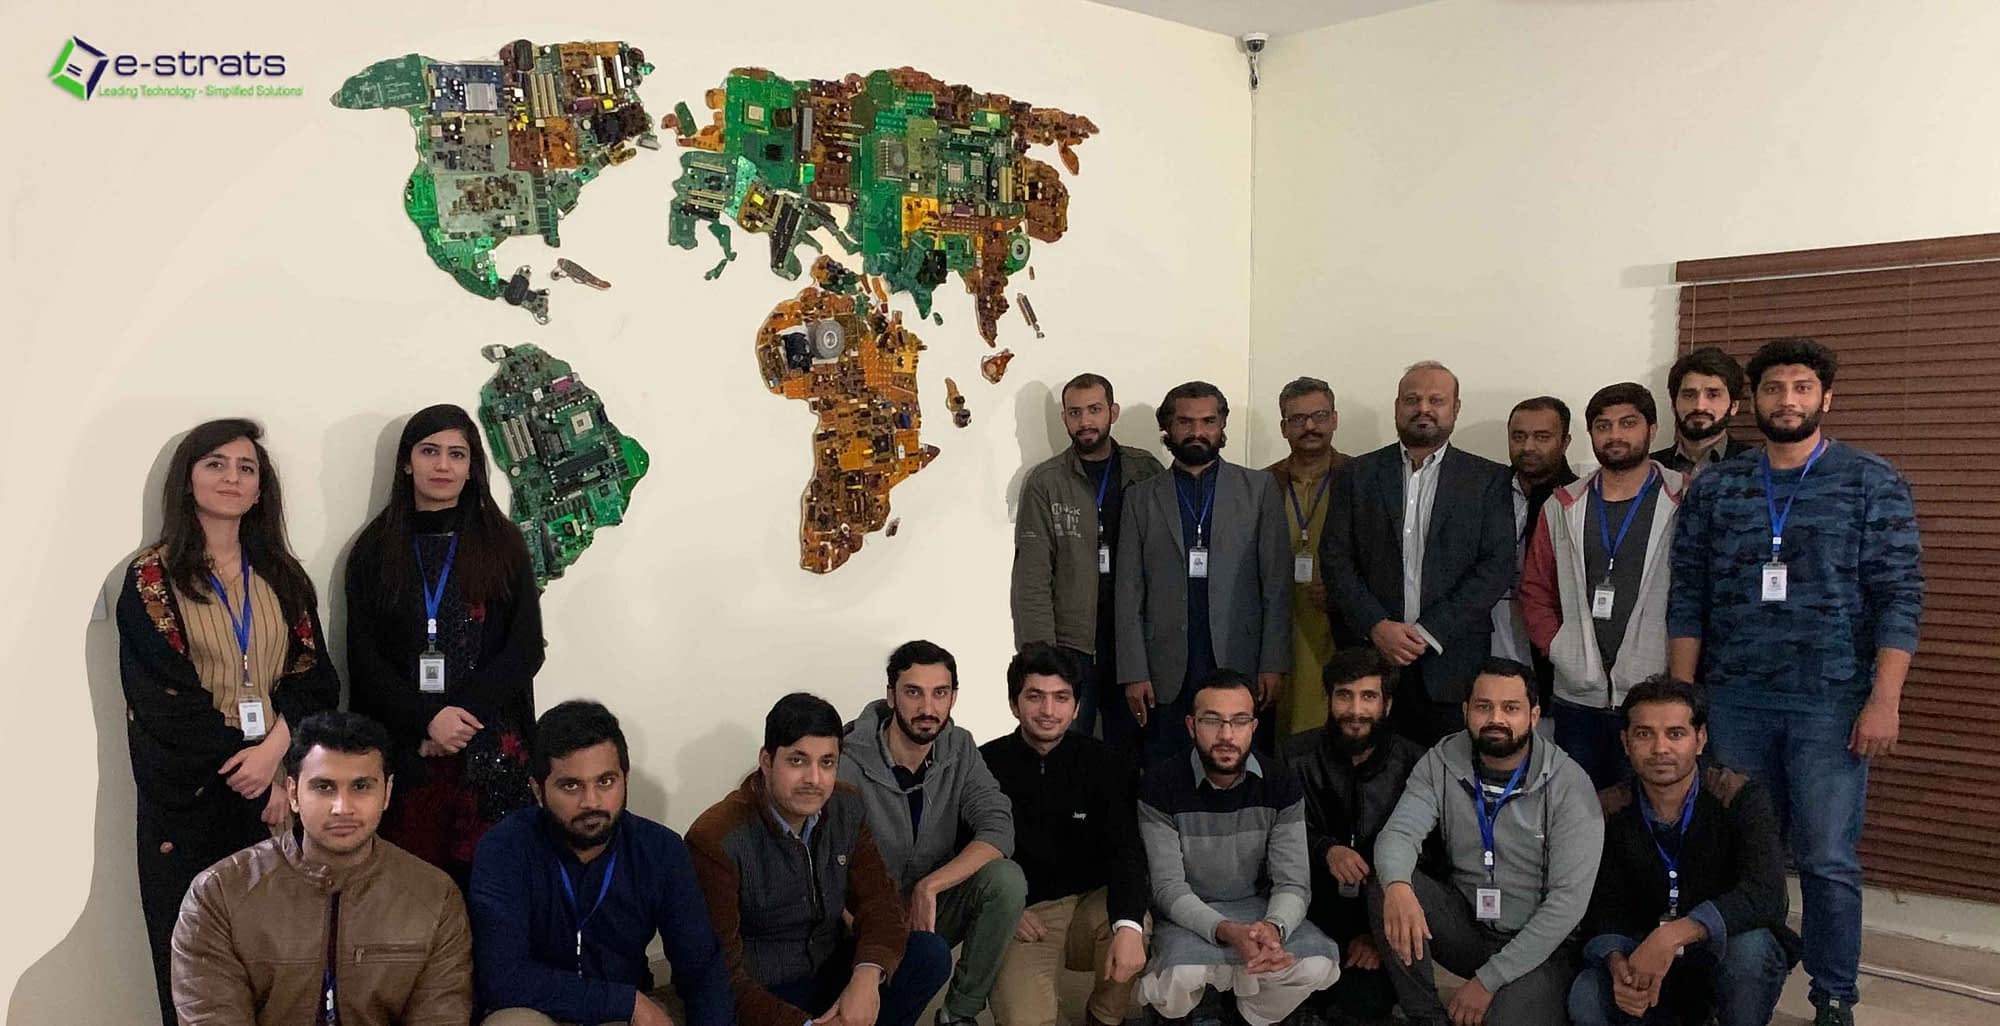 team of e-strats IT company posing infront of a world map made out of e-scrap